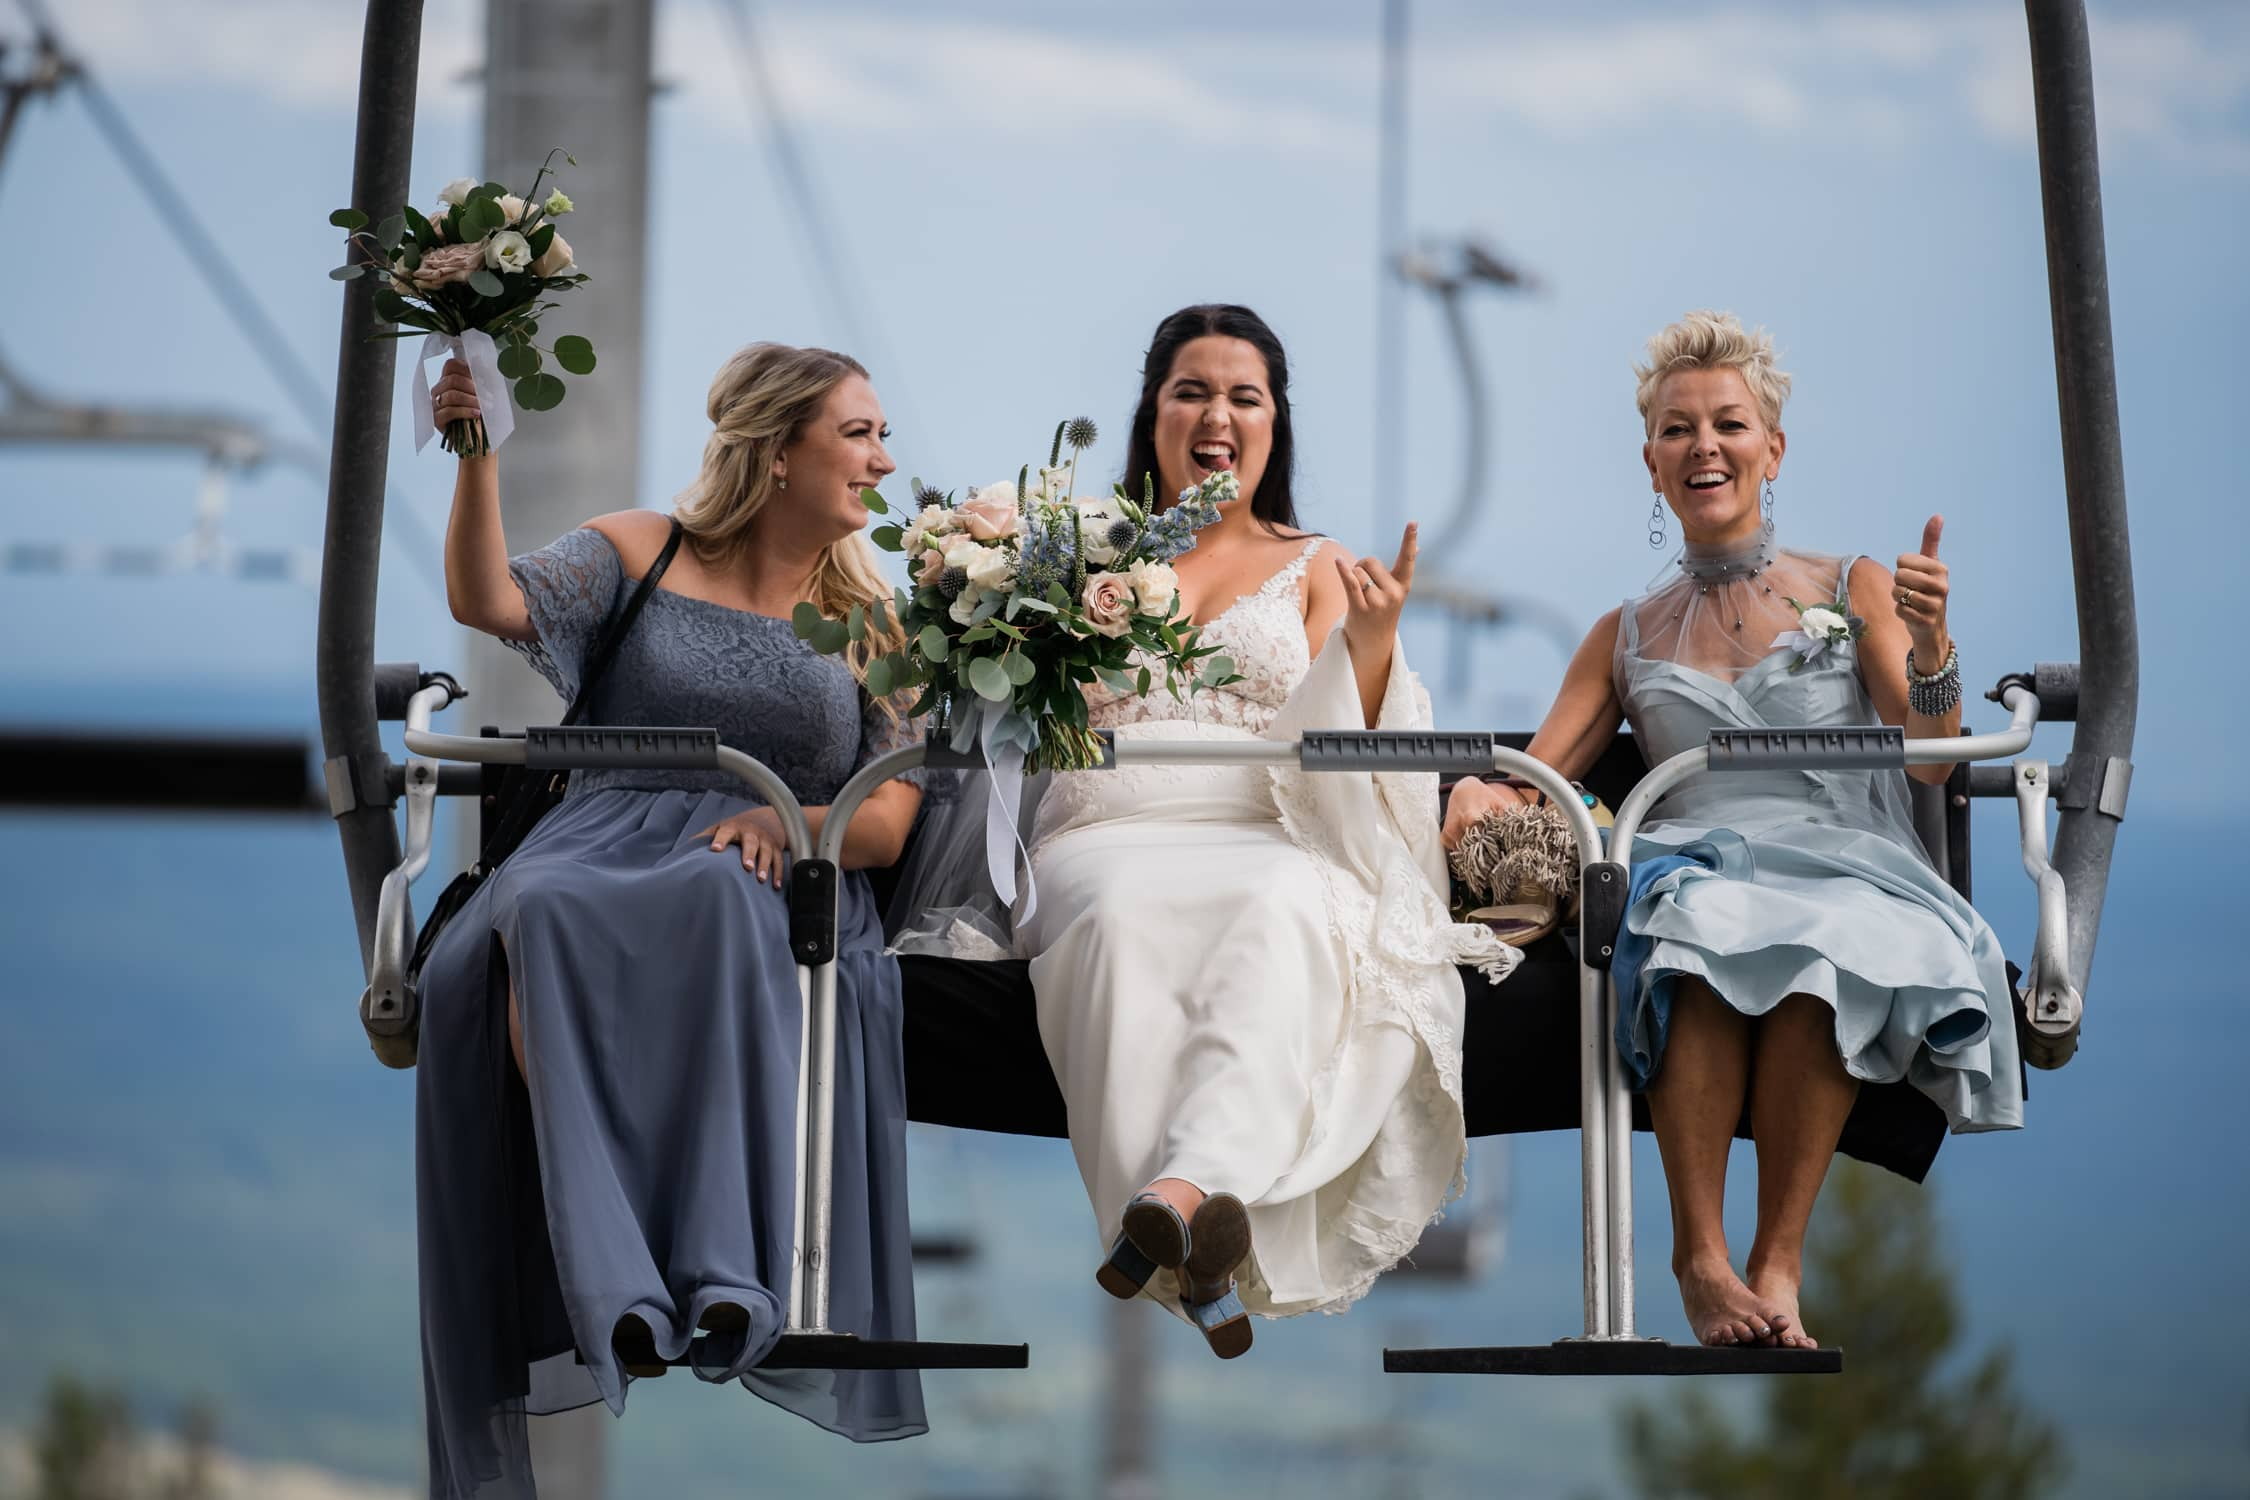 Bride and her Mom and Maid of Honour ride the chair lift to the ceremony at Kimberley Alpine Resort